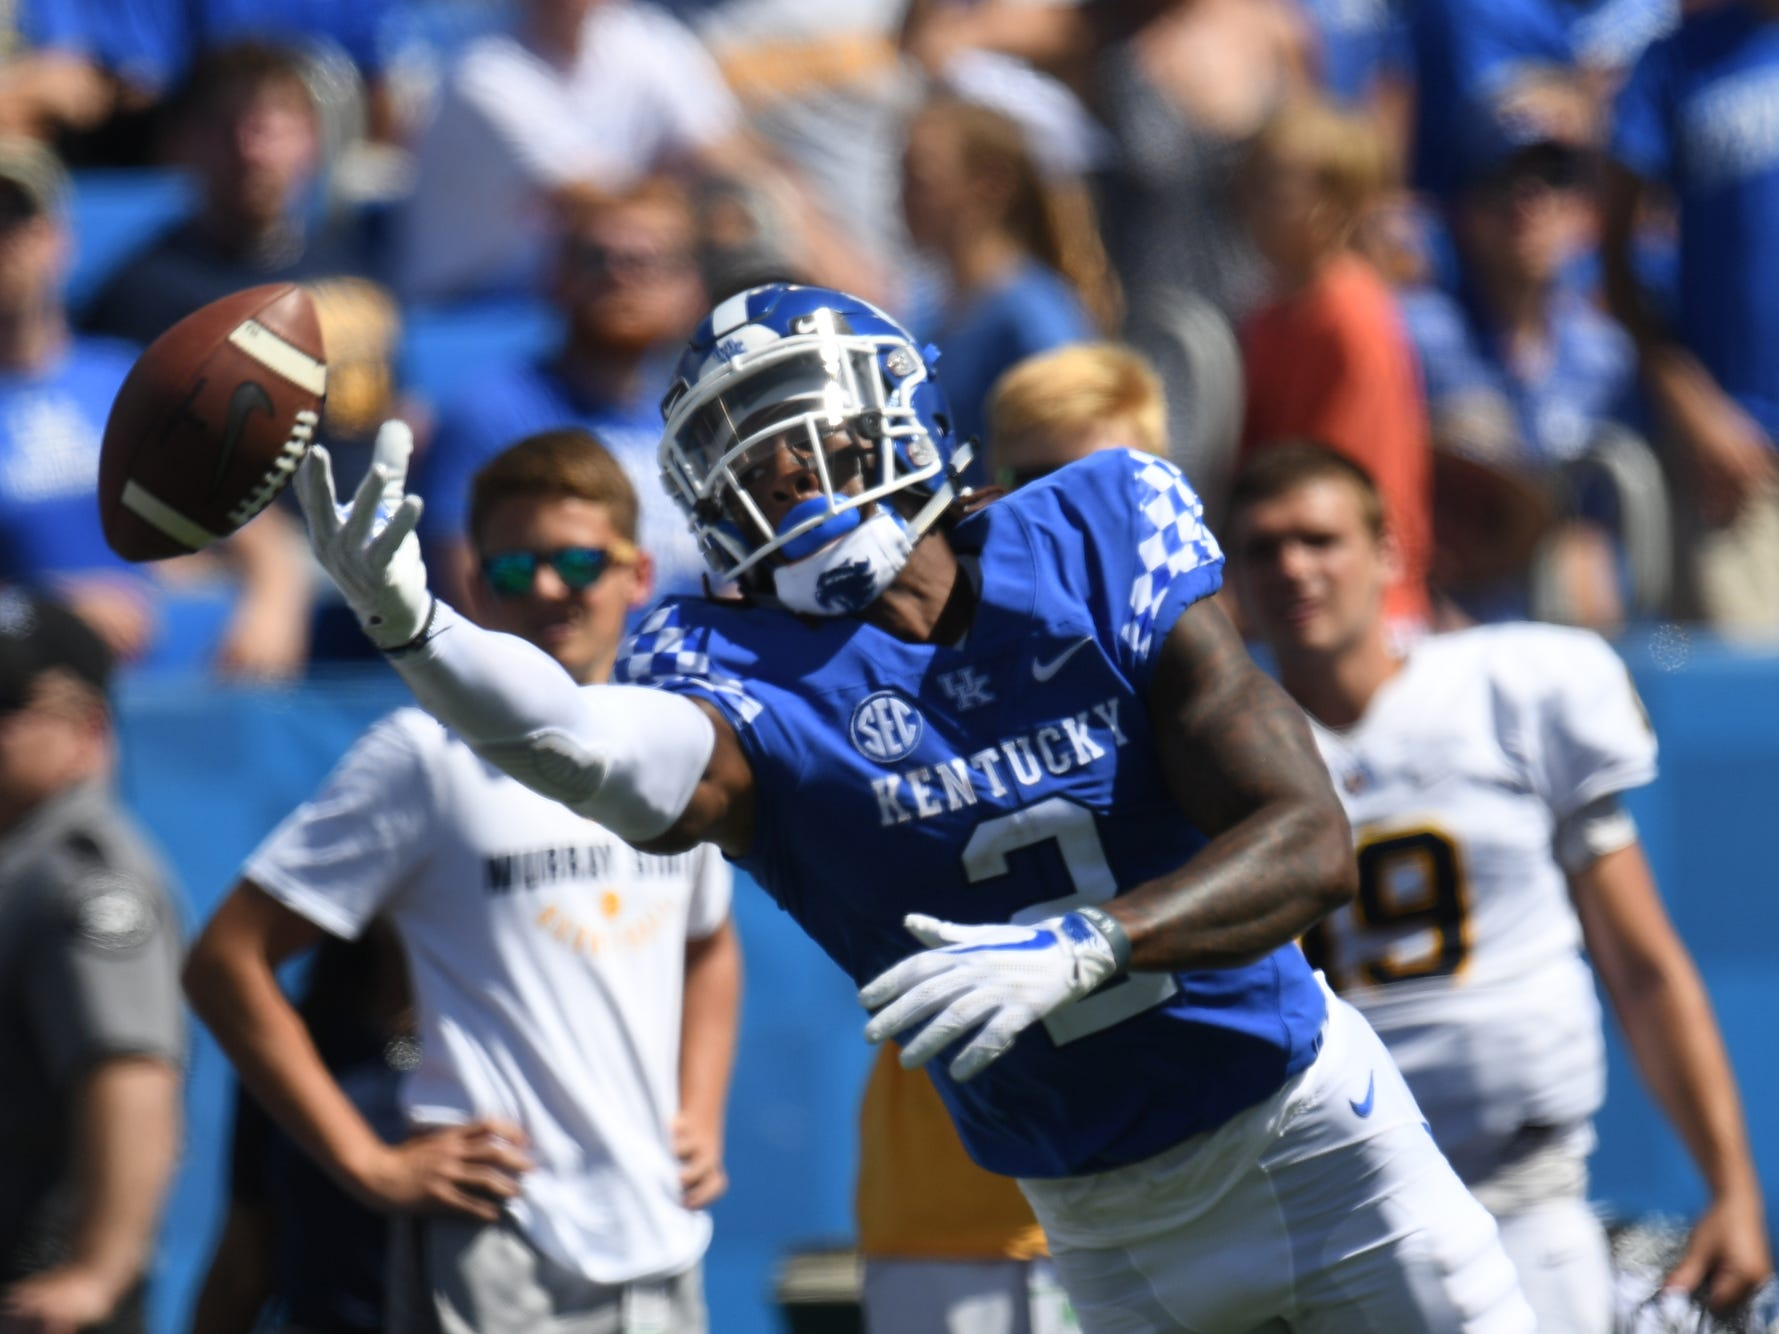 Kentucky wide receiver Dorian Baker stretches for the ball during the University of Kentucky football game against Murray State at Kroger Field in Lexington, Kentucky, on Saturday, Sept. 15, 2018.